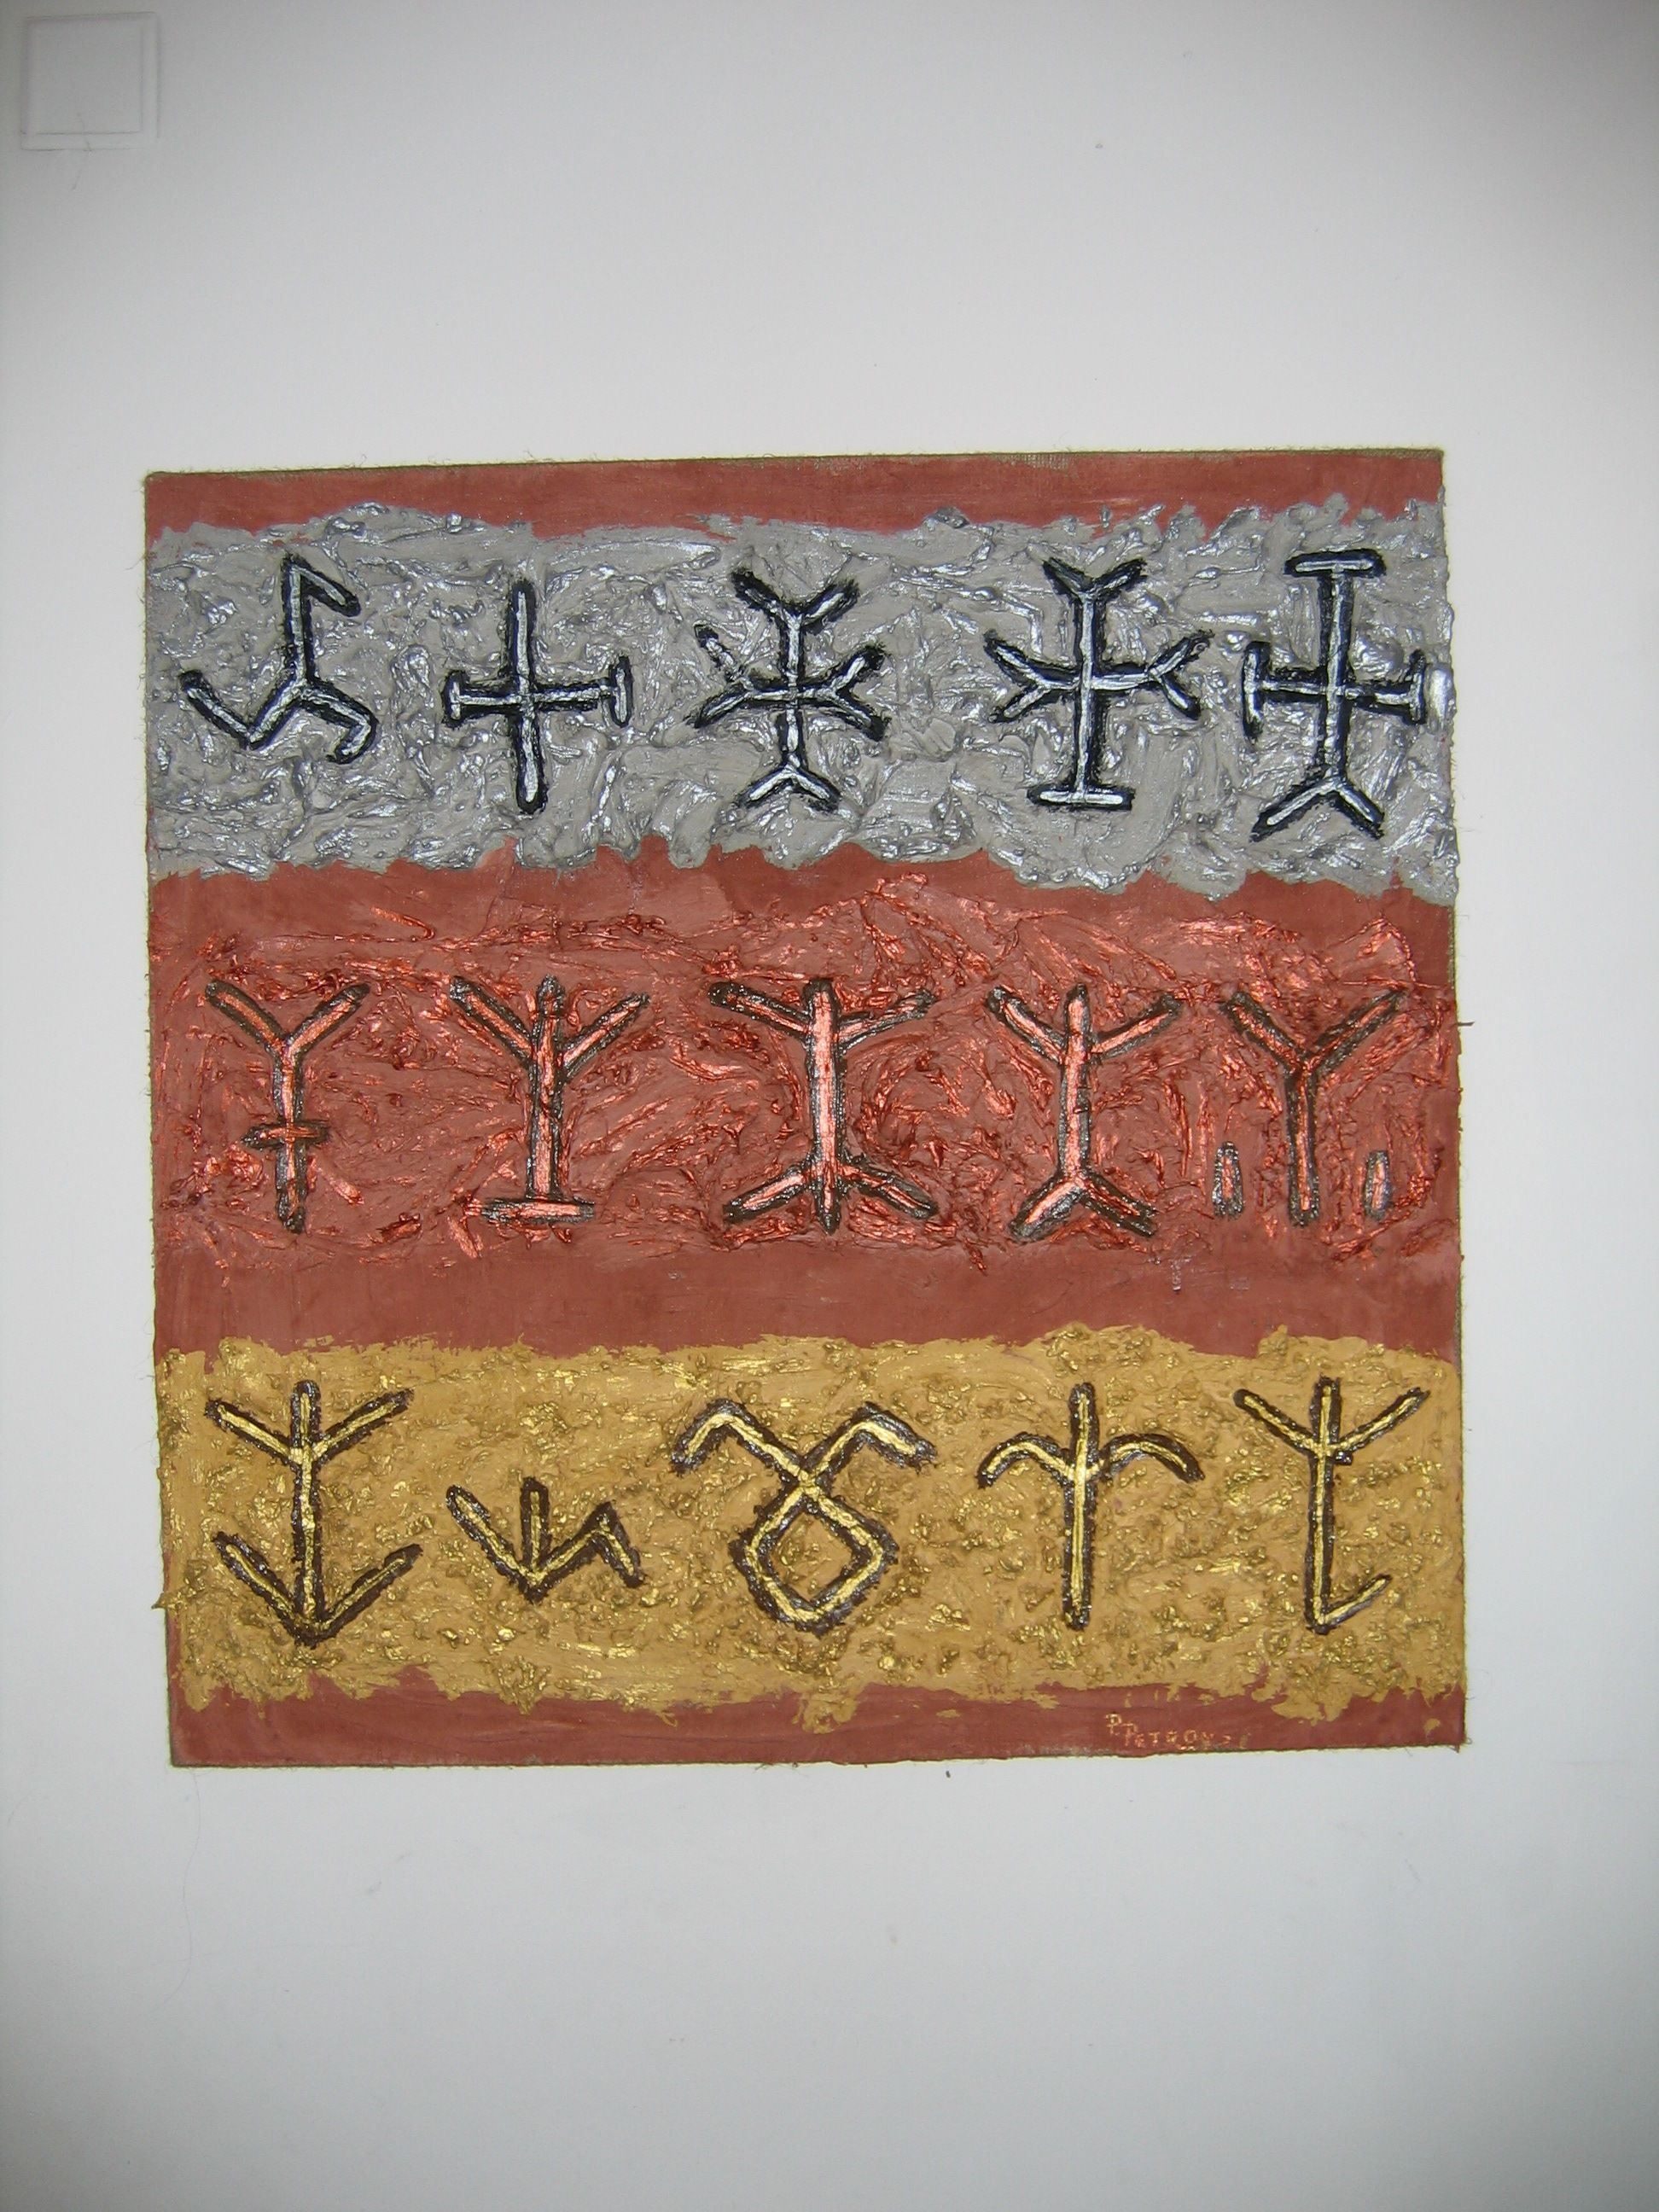 Httpwww Overlordsofchaos Comhtmlorigin Of The Word Jew Html: PROTO BULGARIAN RUNIC SIGNS The Proto Bulgarian Runes Are